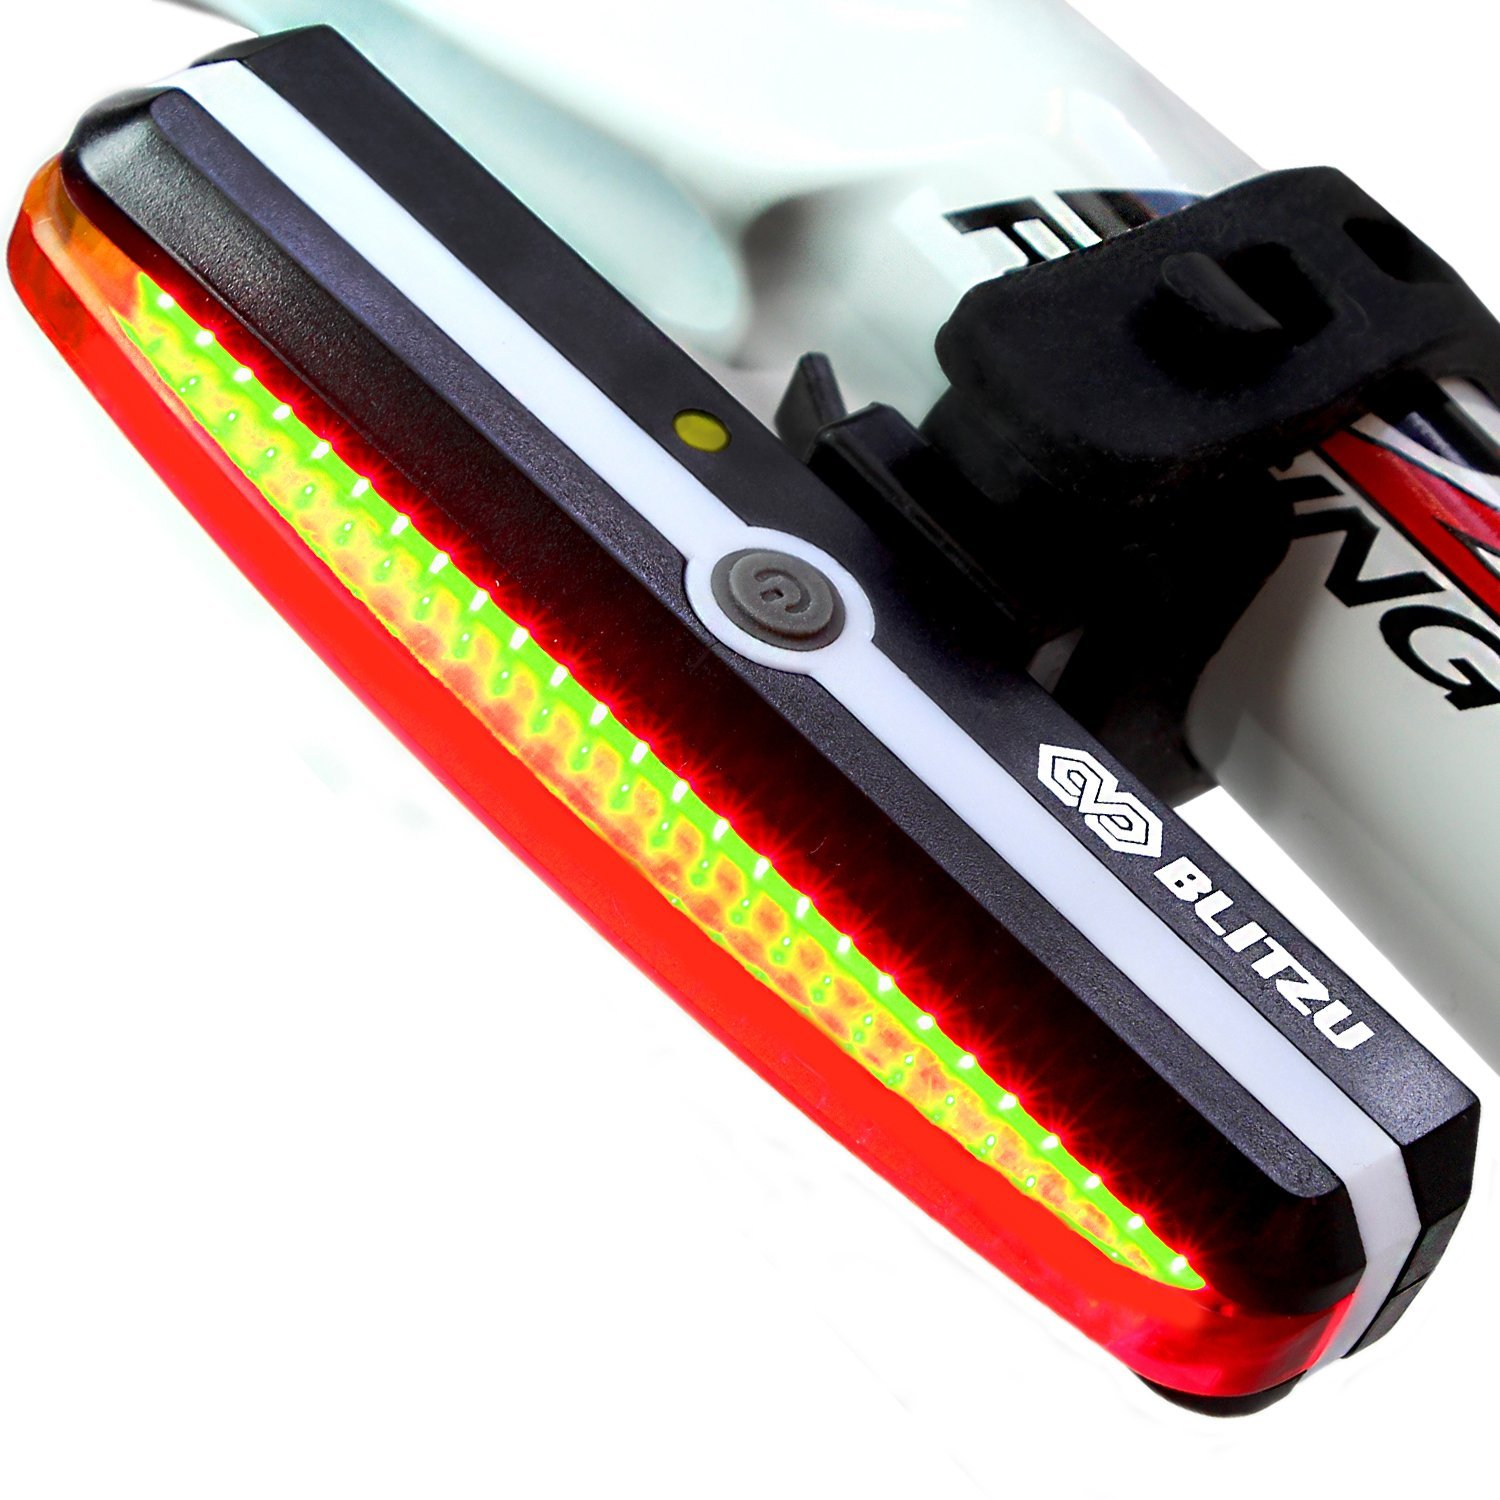 High Intensity Red Led Bike Light Cool Stuff Under Twenty